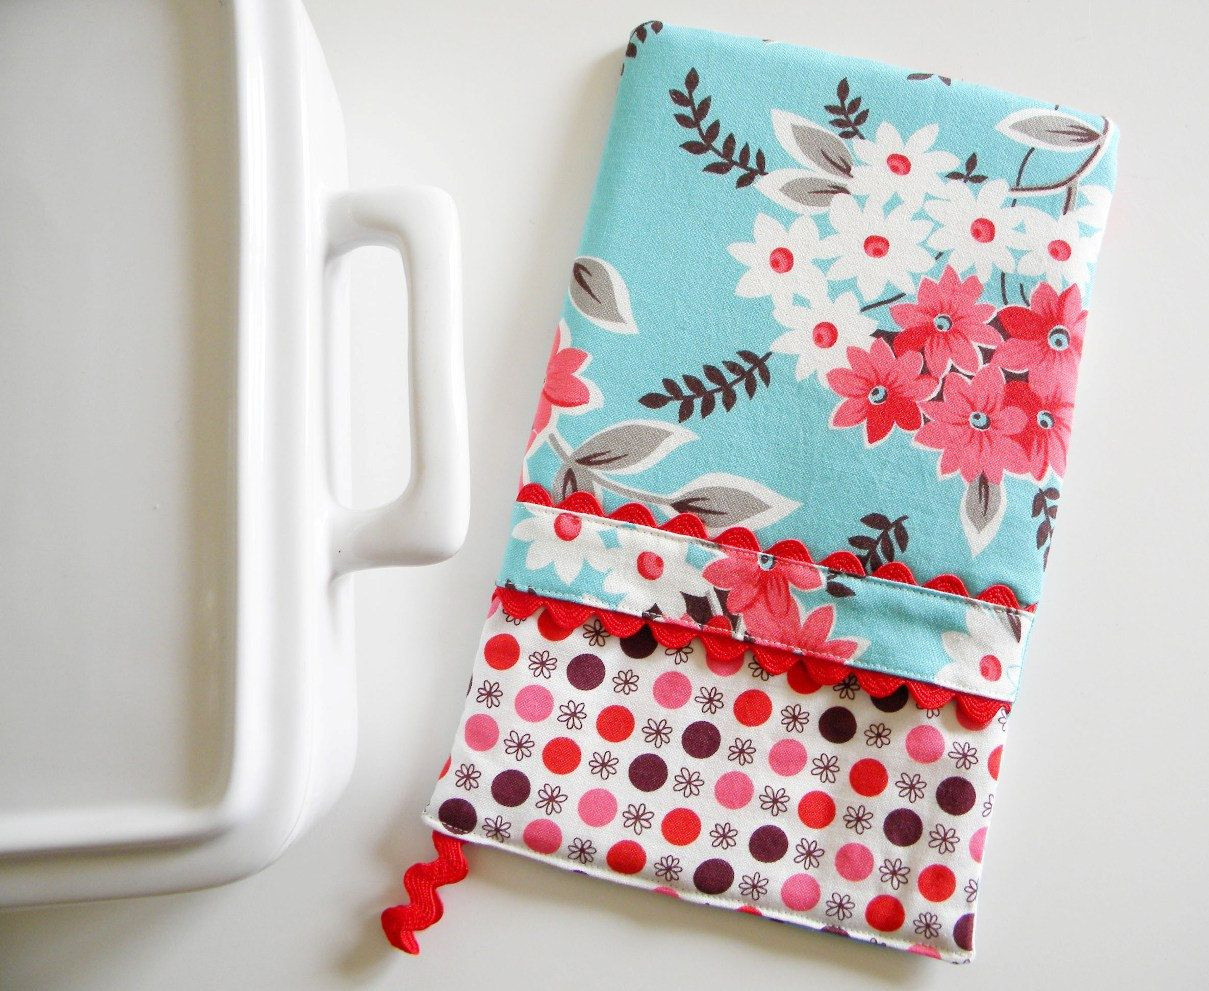 Oven Mitt - Hot Pad Floral Bouquet in aqua and red | City Chic ...